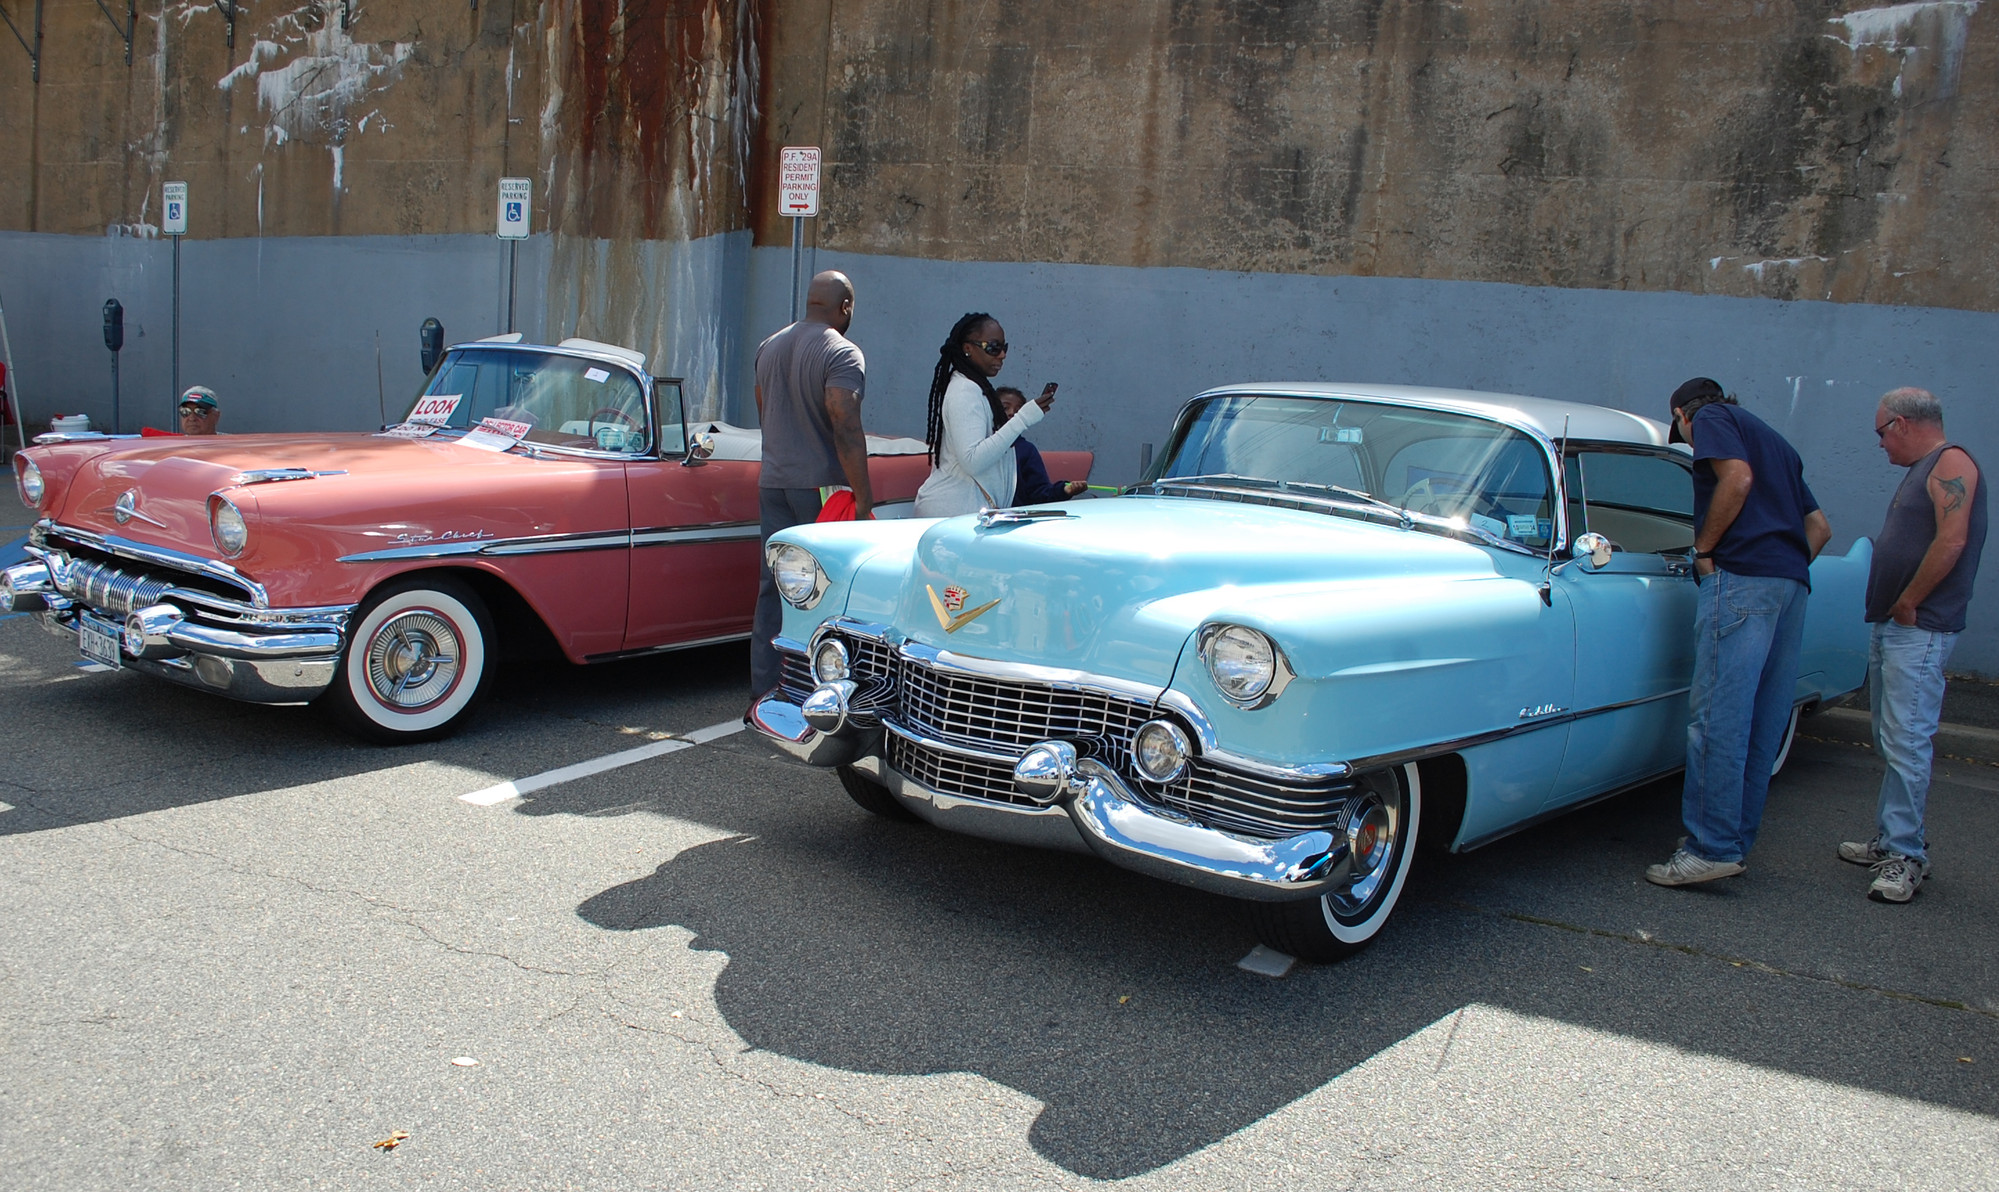 One addition to the fair this year was a classic car show in the Long Island Rail Road parking lot.